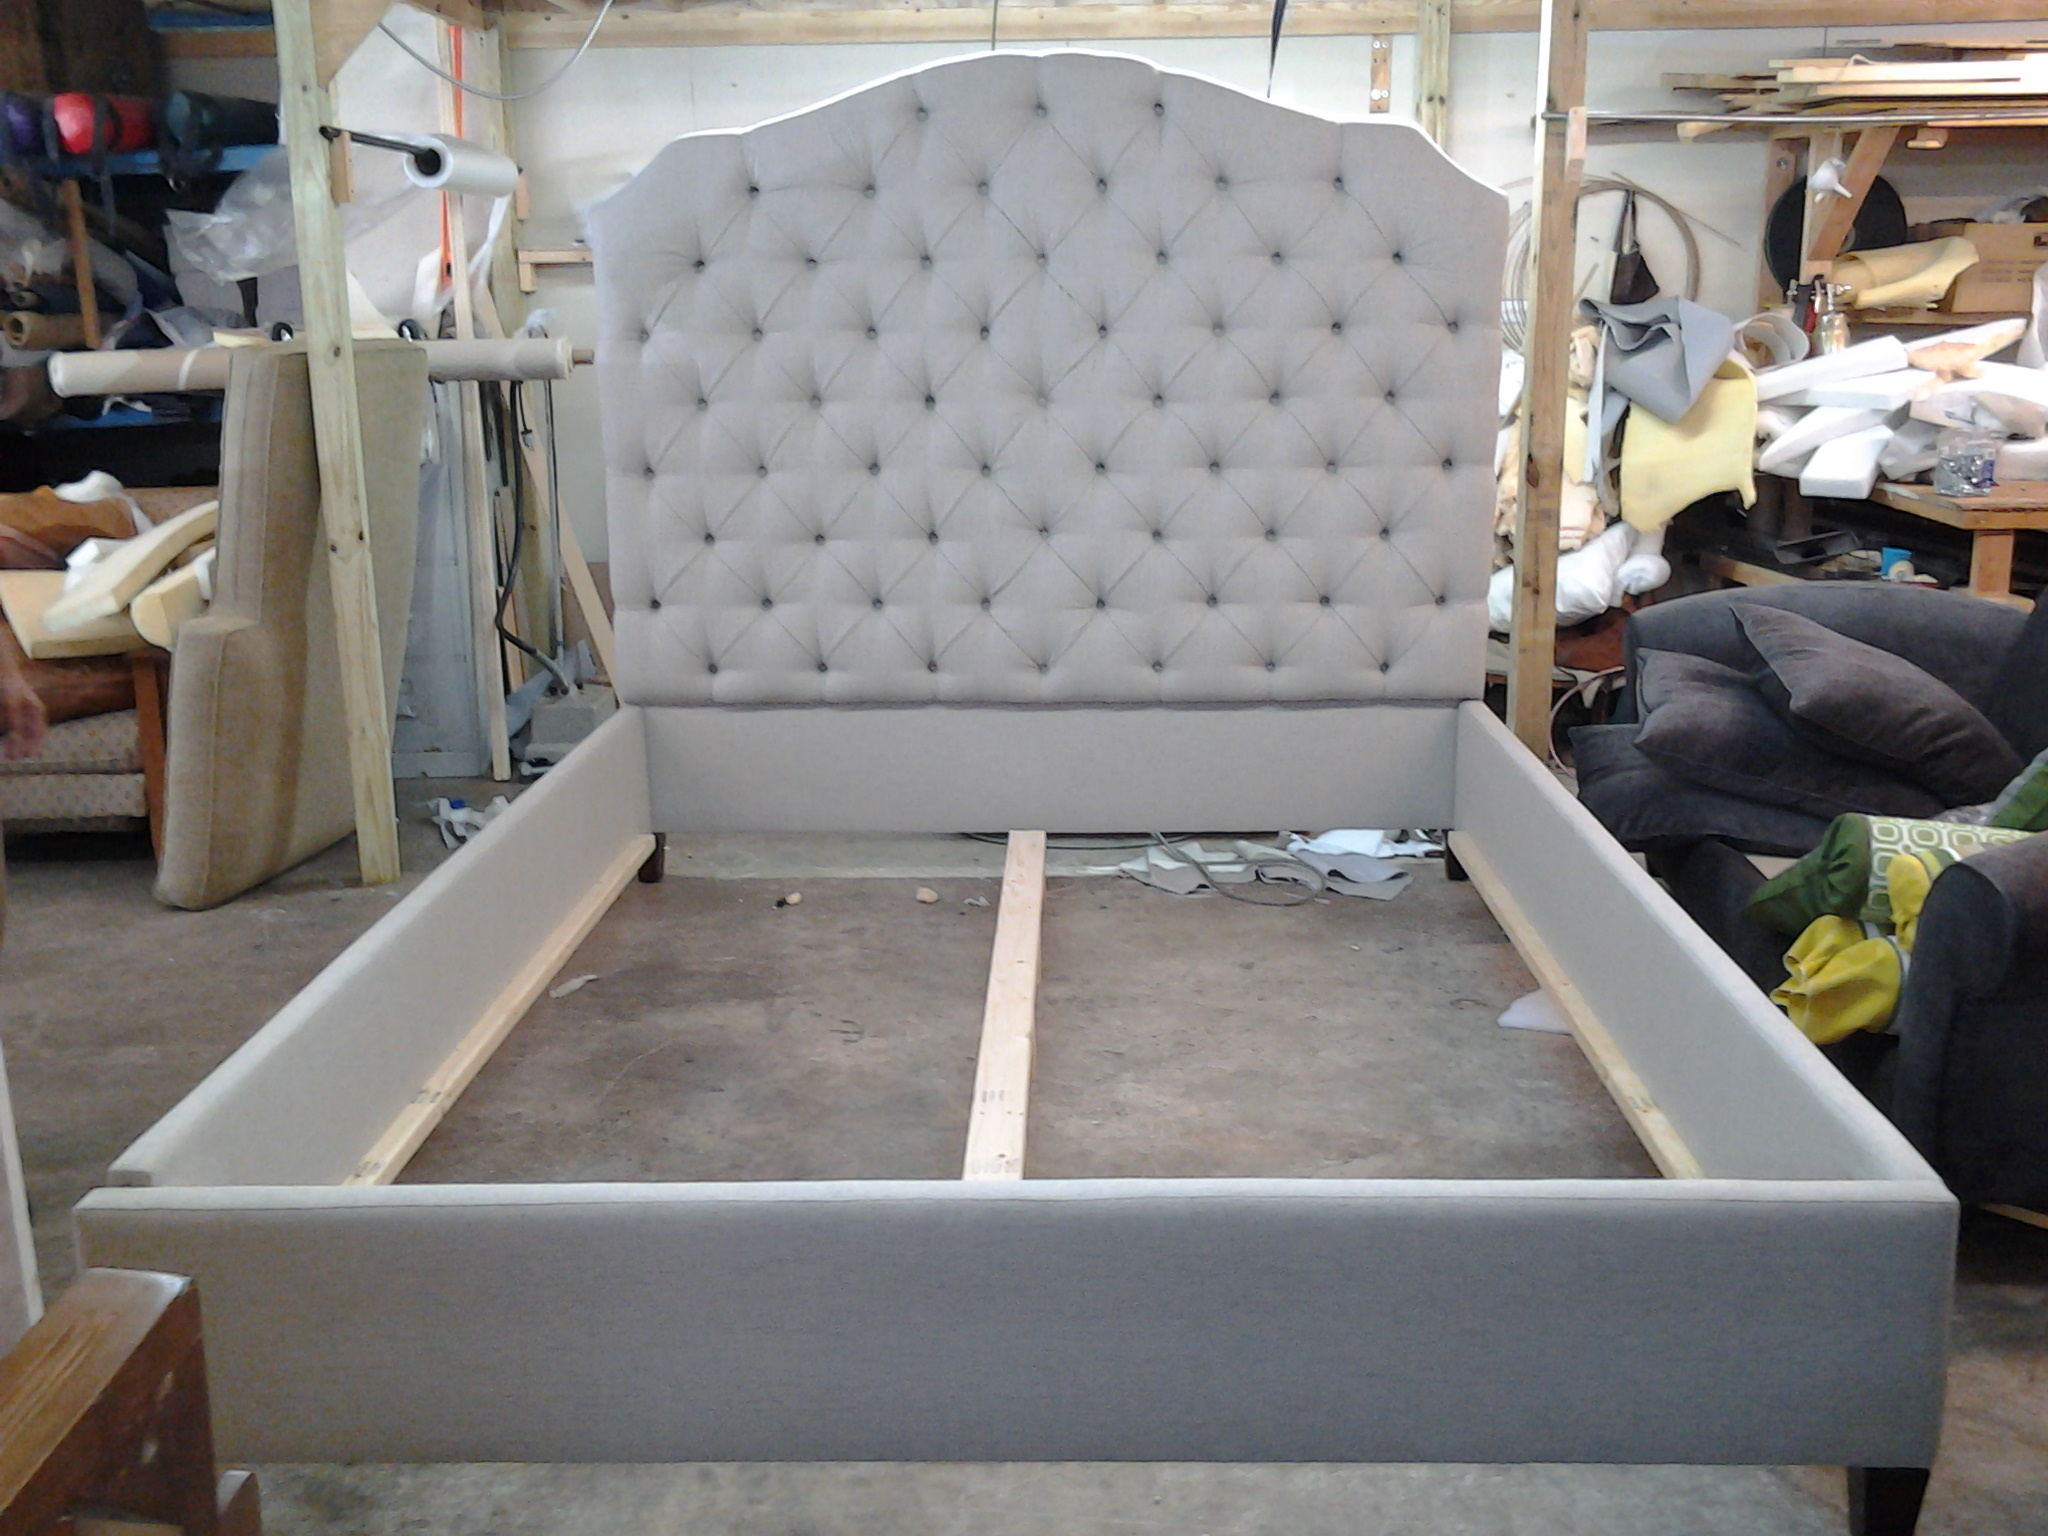 Tufted Headboard & Bed